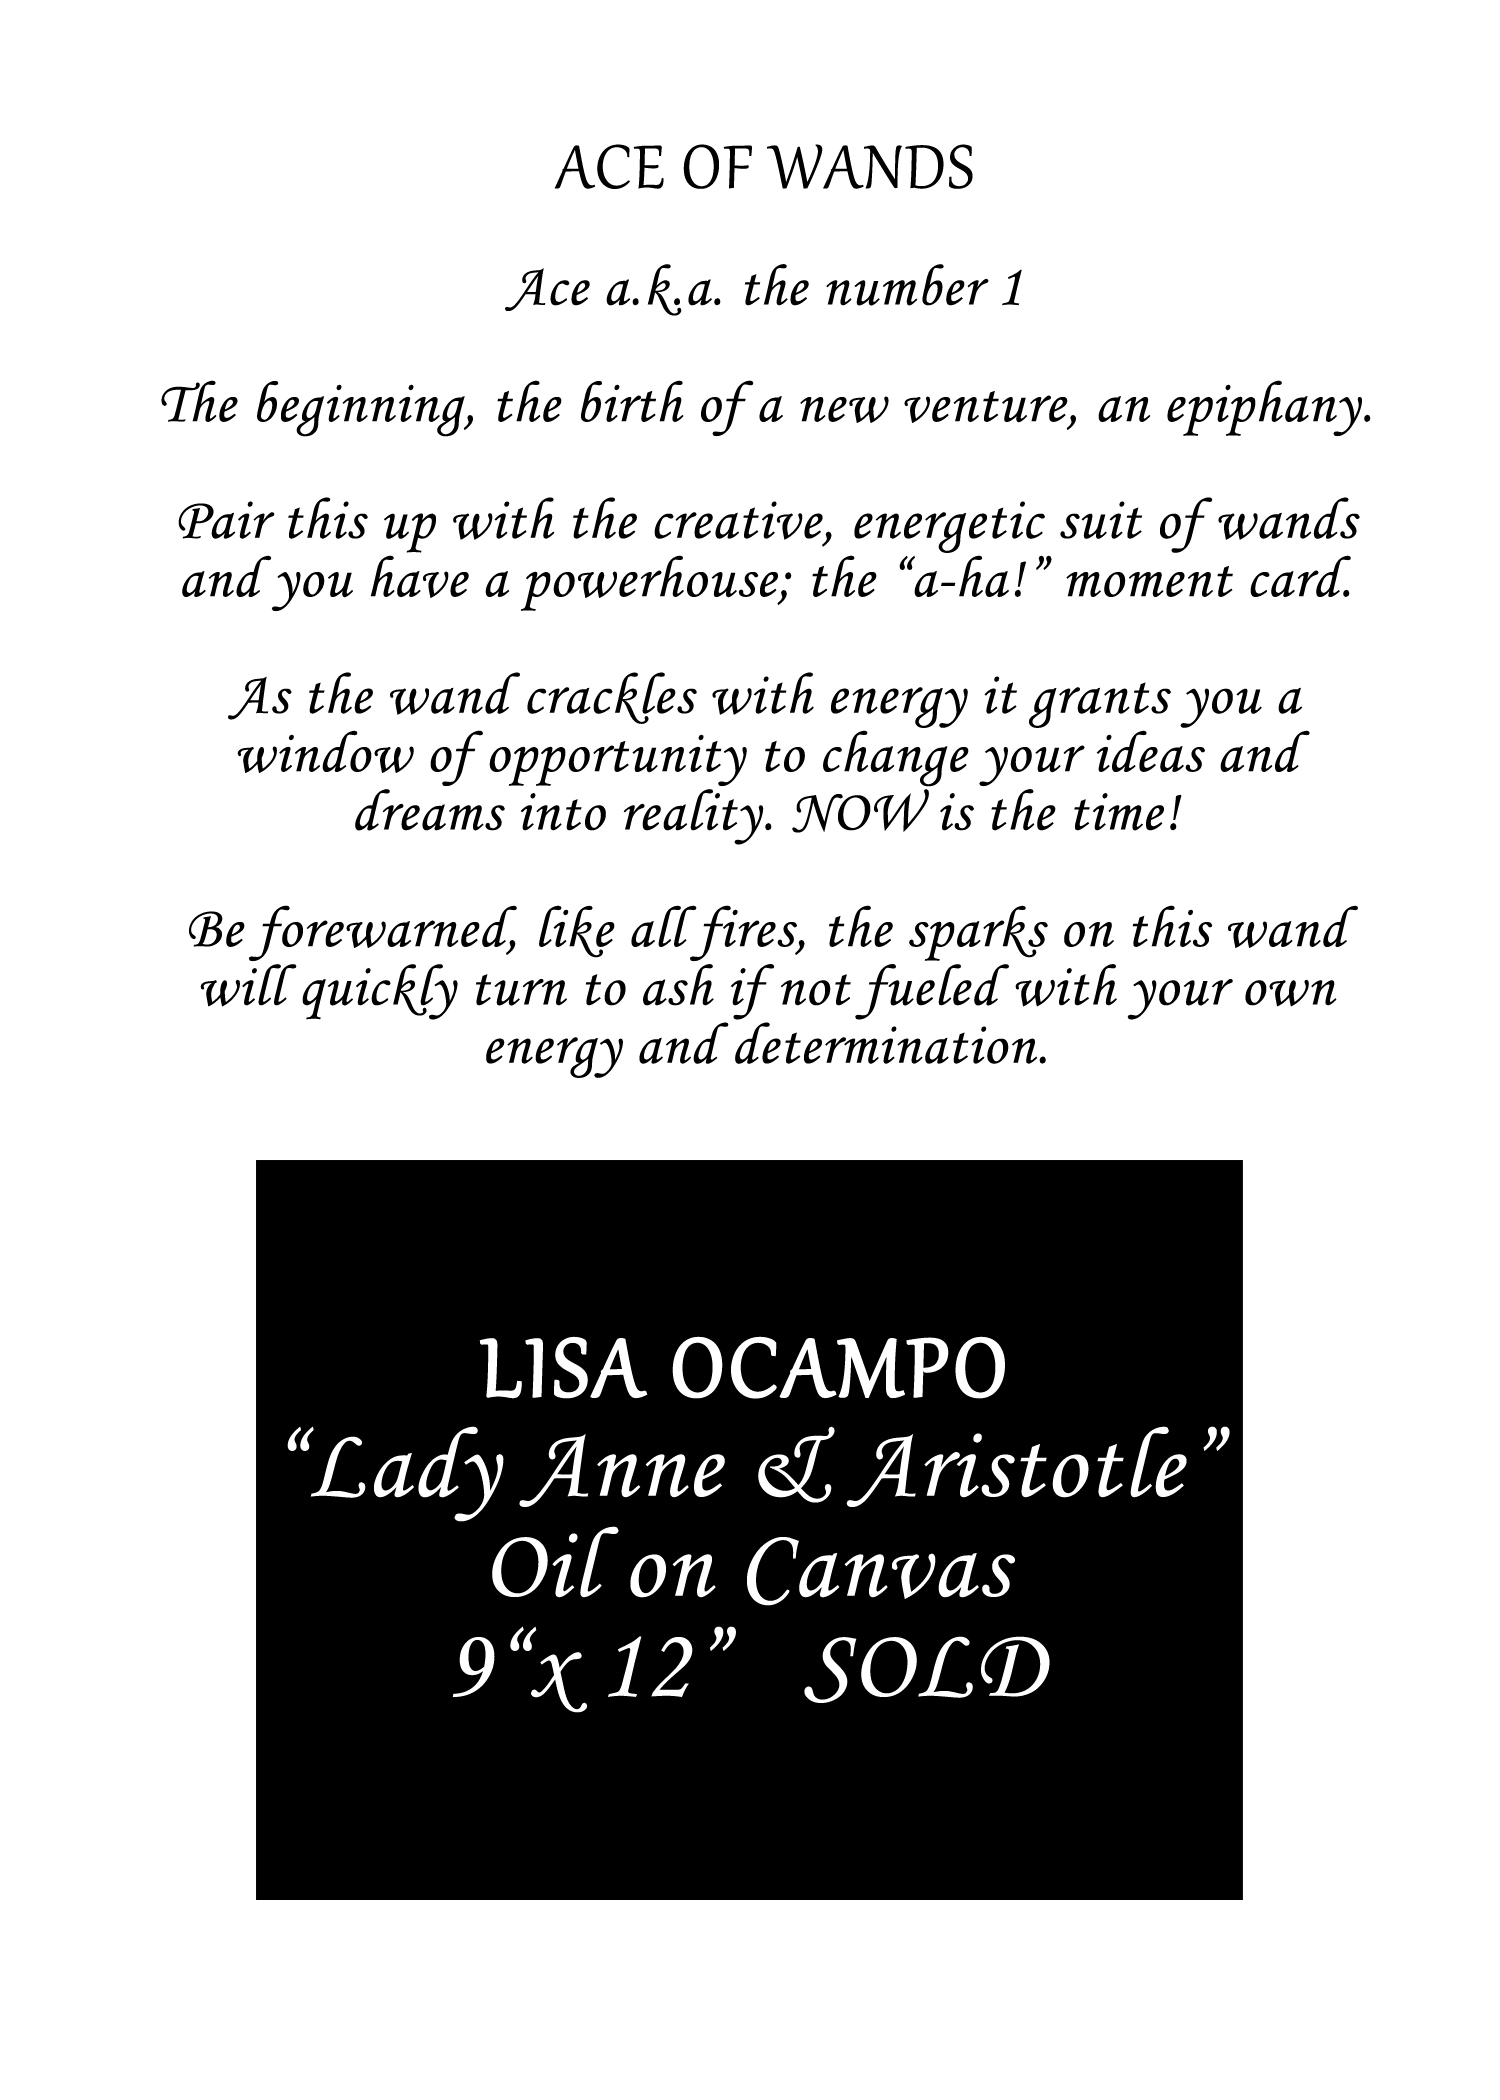 Lisa-Ocampo-Lady-Anne-&-Aristotle-Ace-Of-Wands-21.jpg